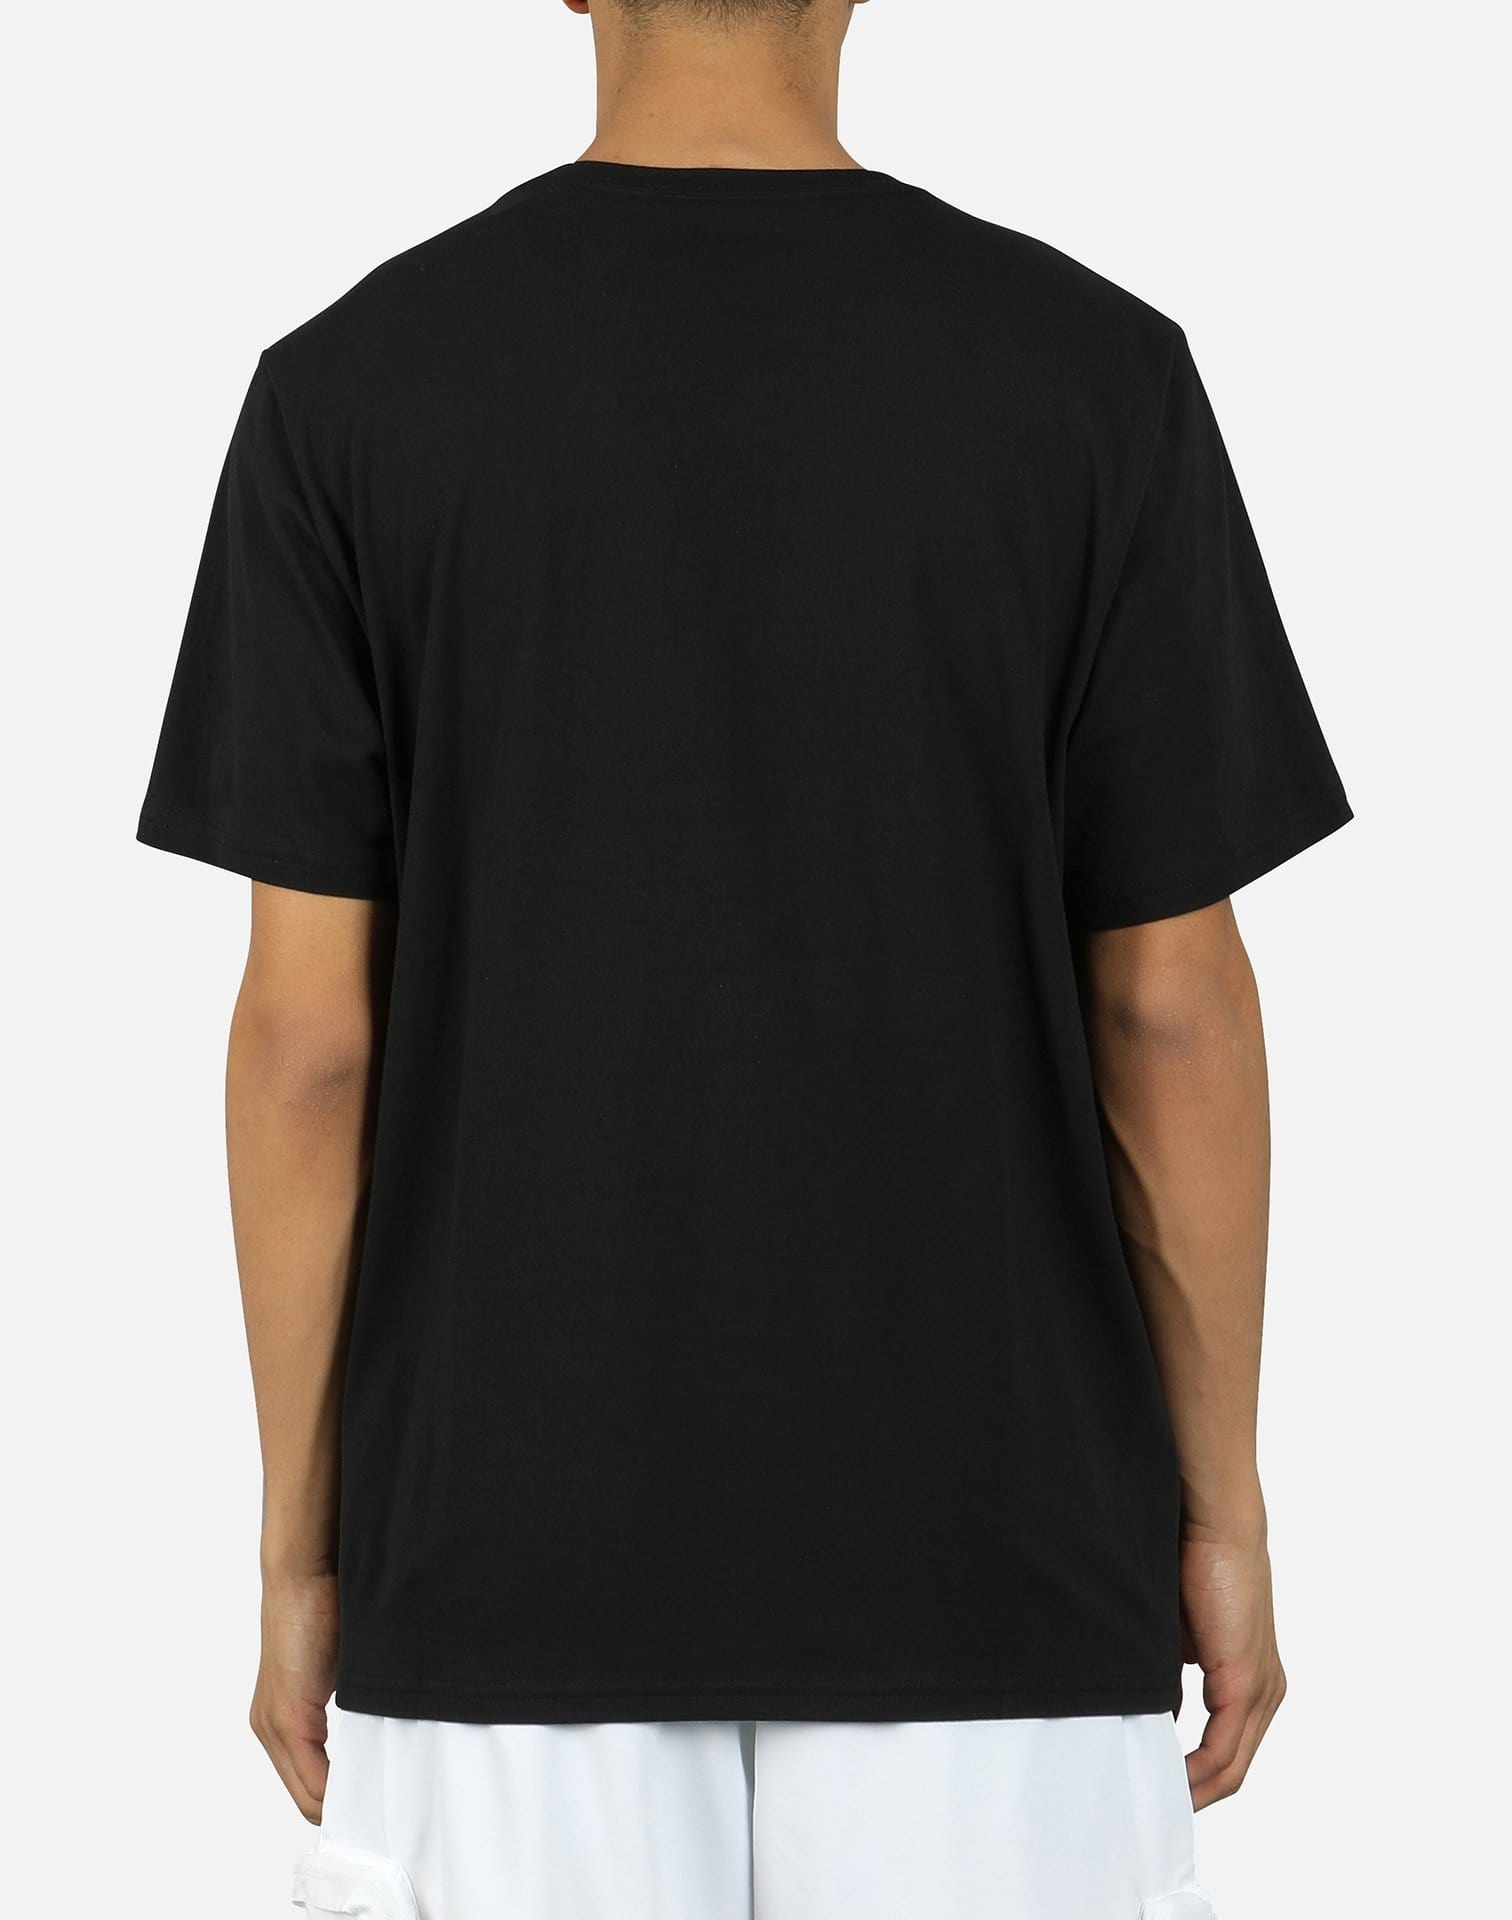 FILA Men's Adao Tee